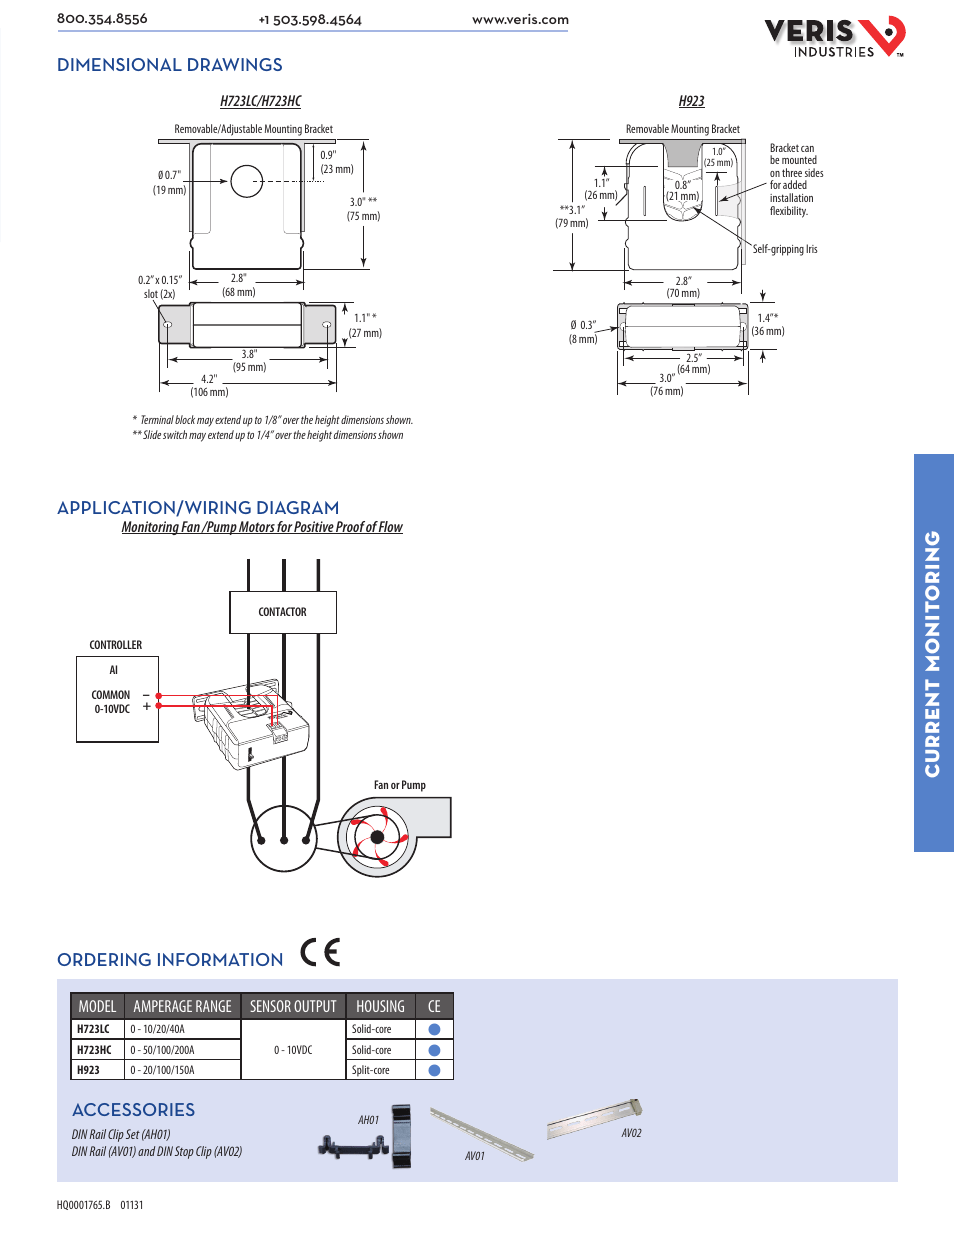 medium resolution of current monit oring dimensional drawings application wiring diagram ordering information accessories